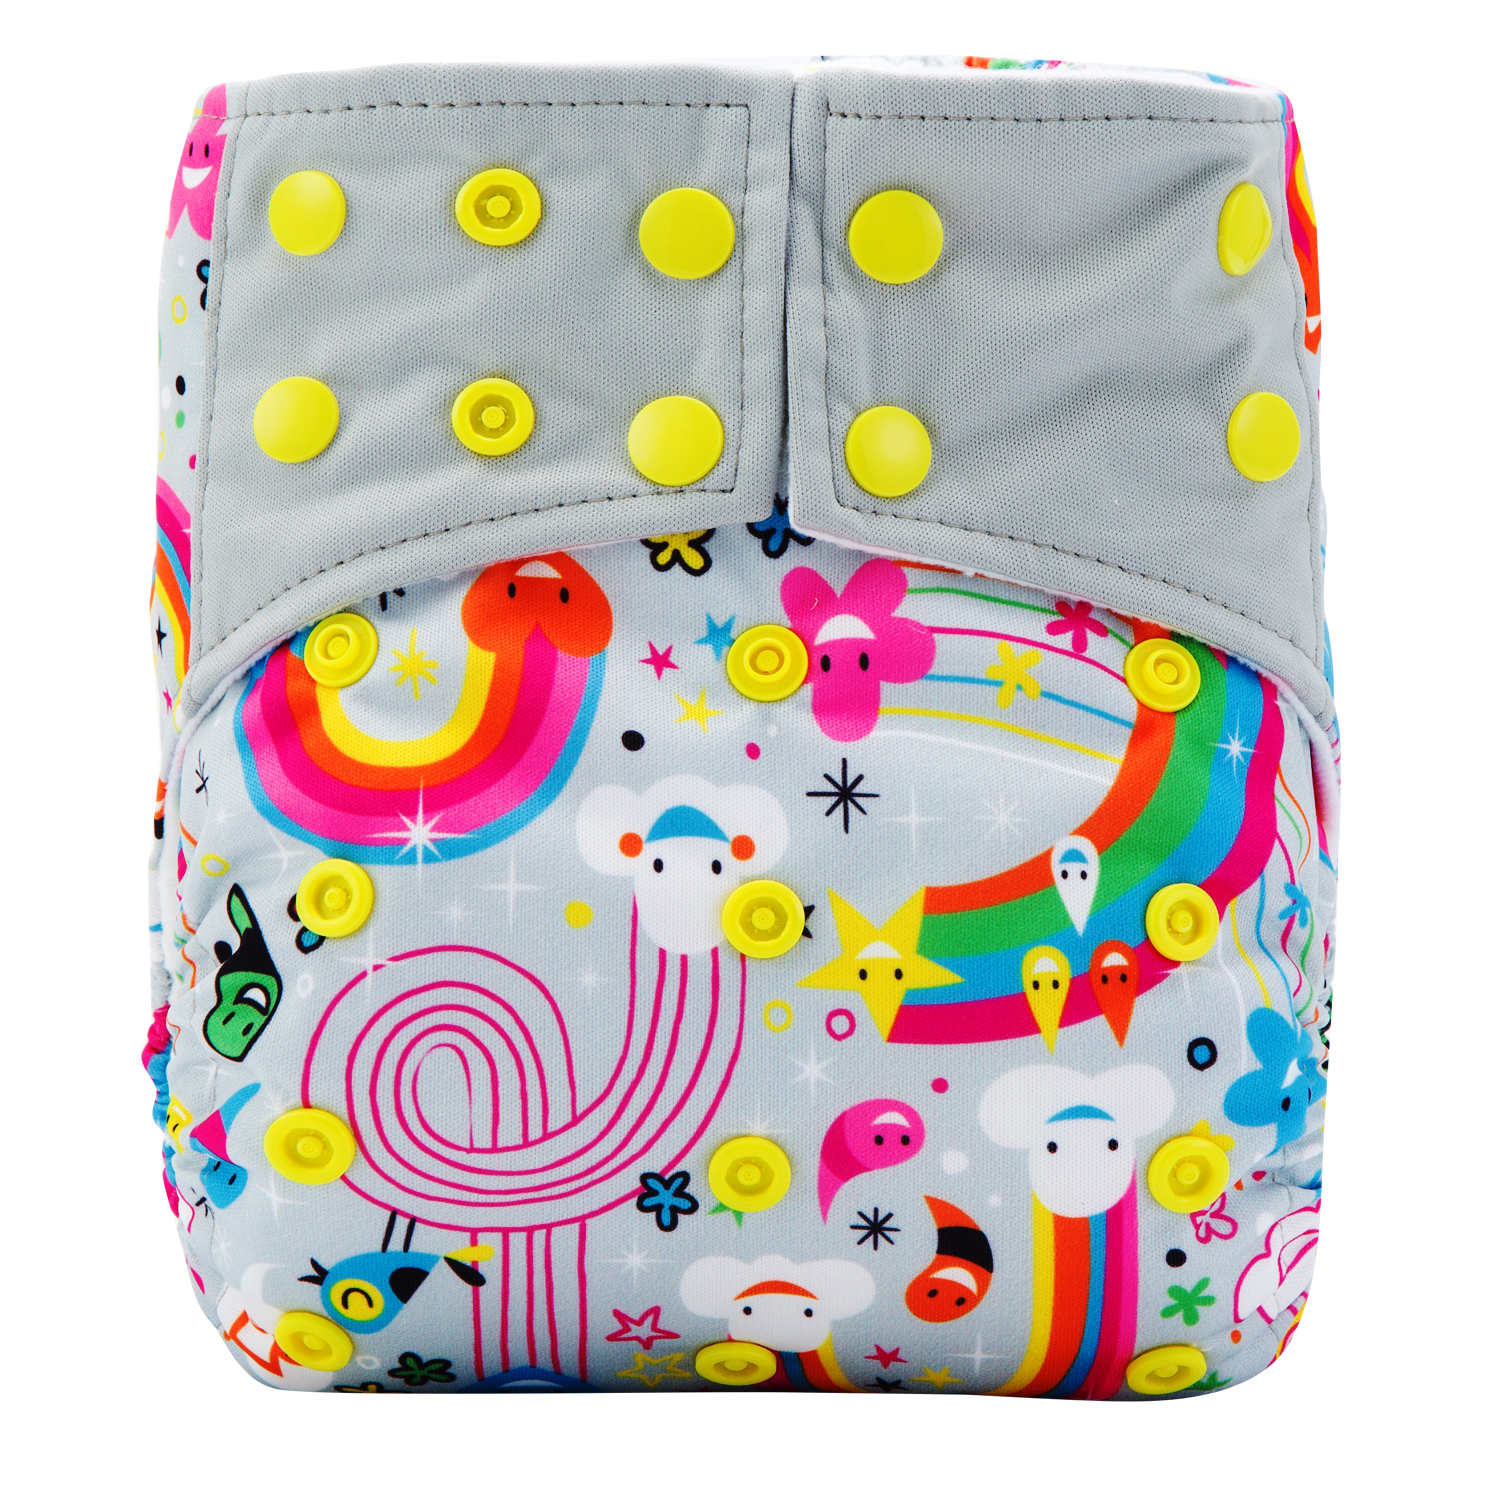 Aio Cloth Diapers All In One Cloth Diaper Eco Friendly Pocket Nappies With 3 Layer Microfiber Insert APS19